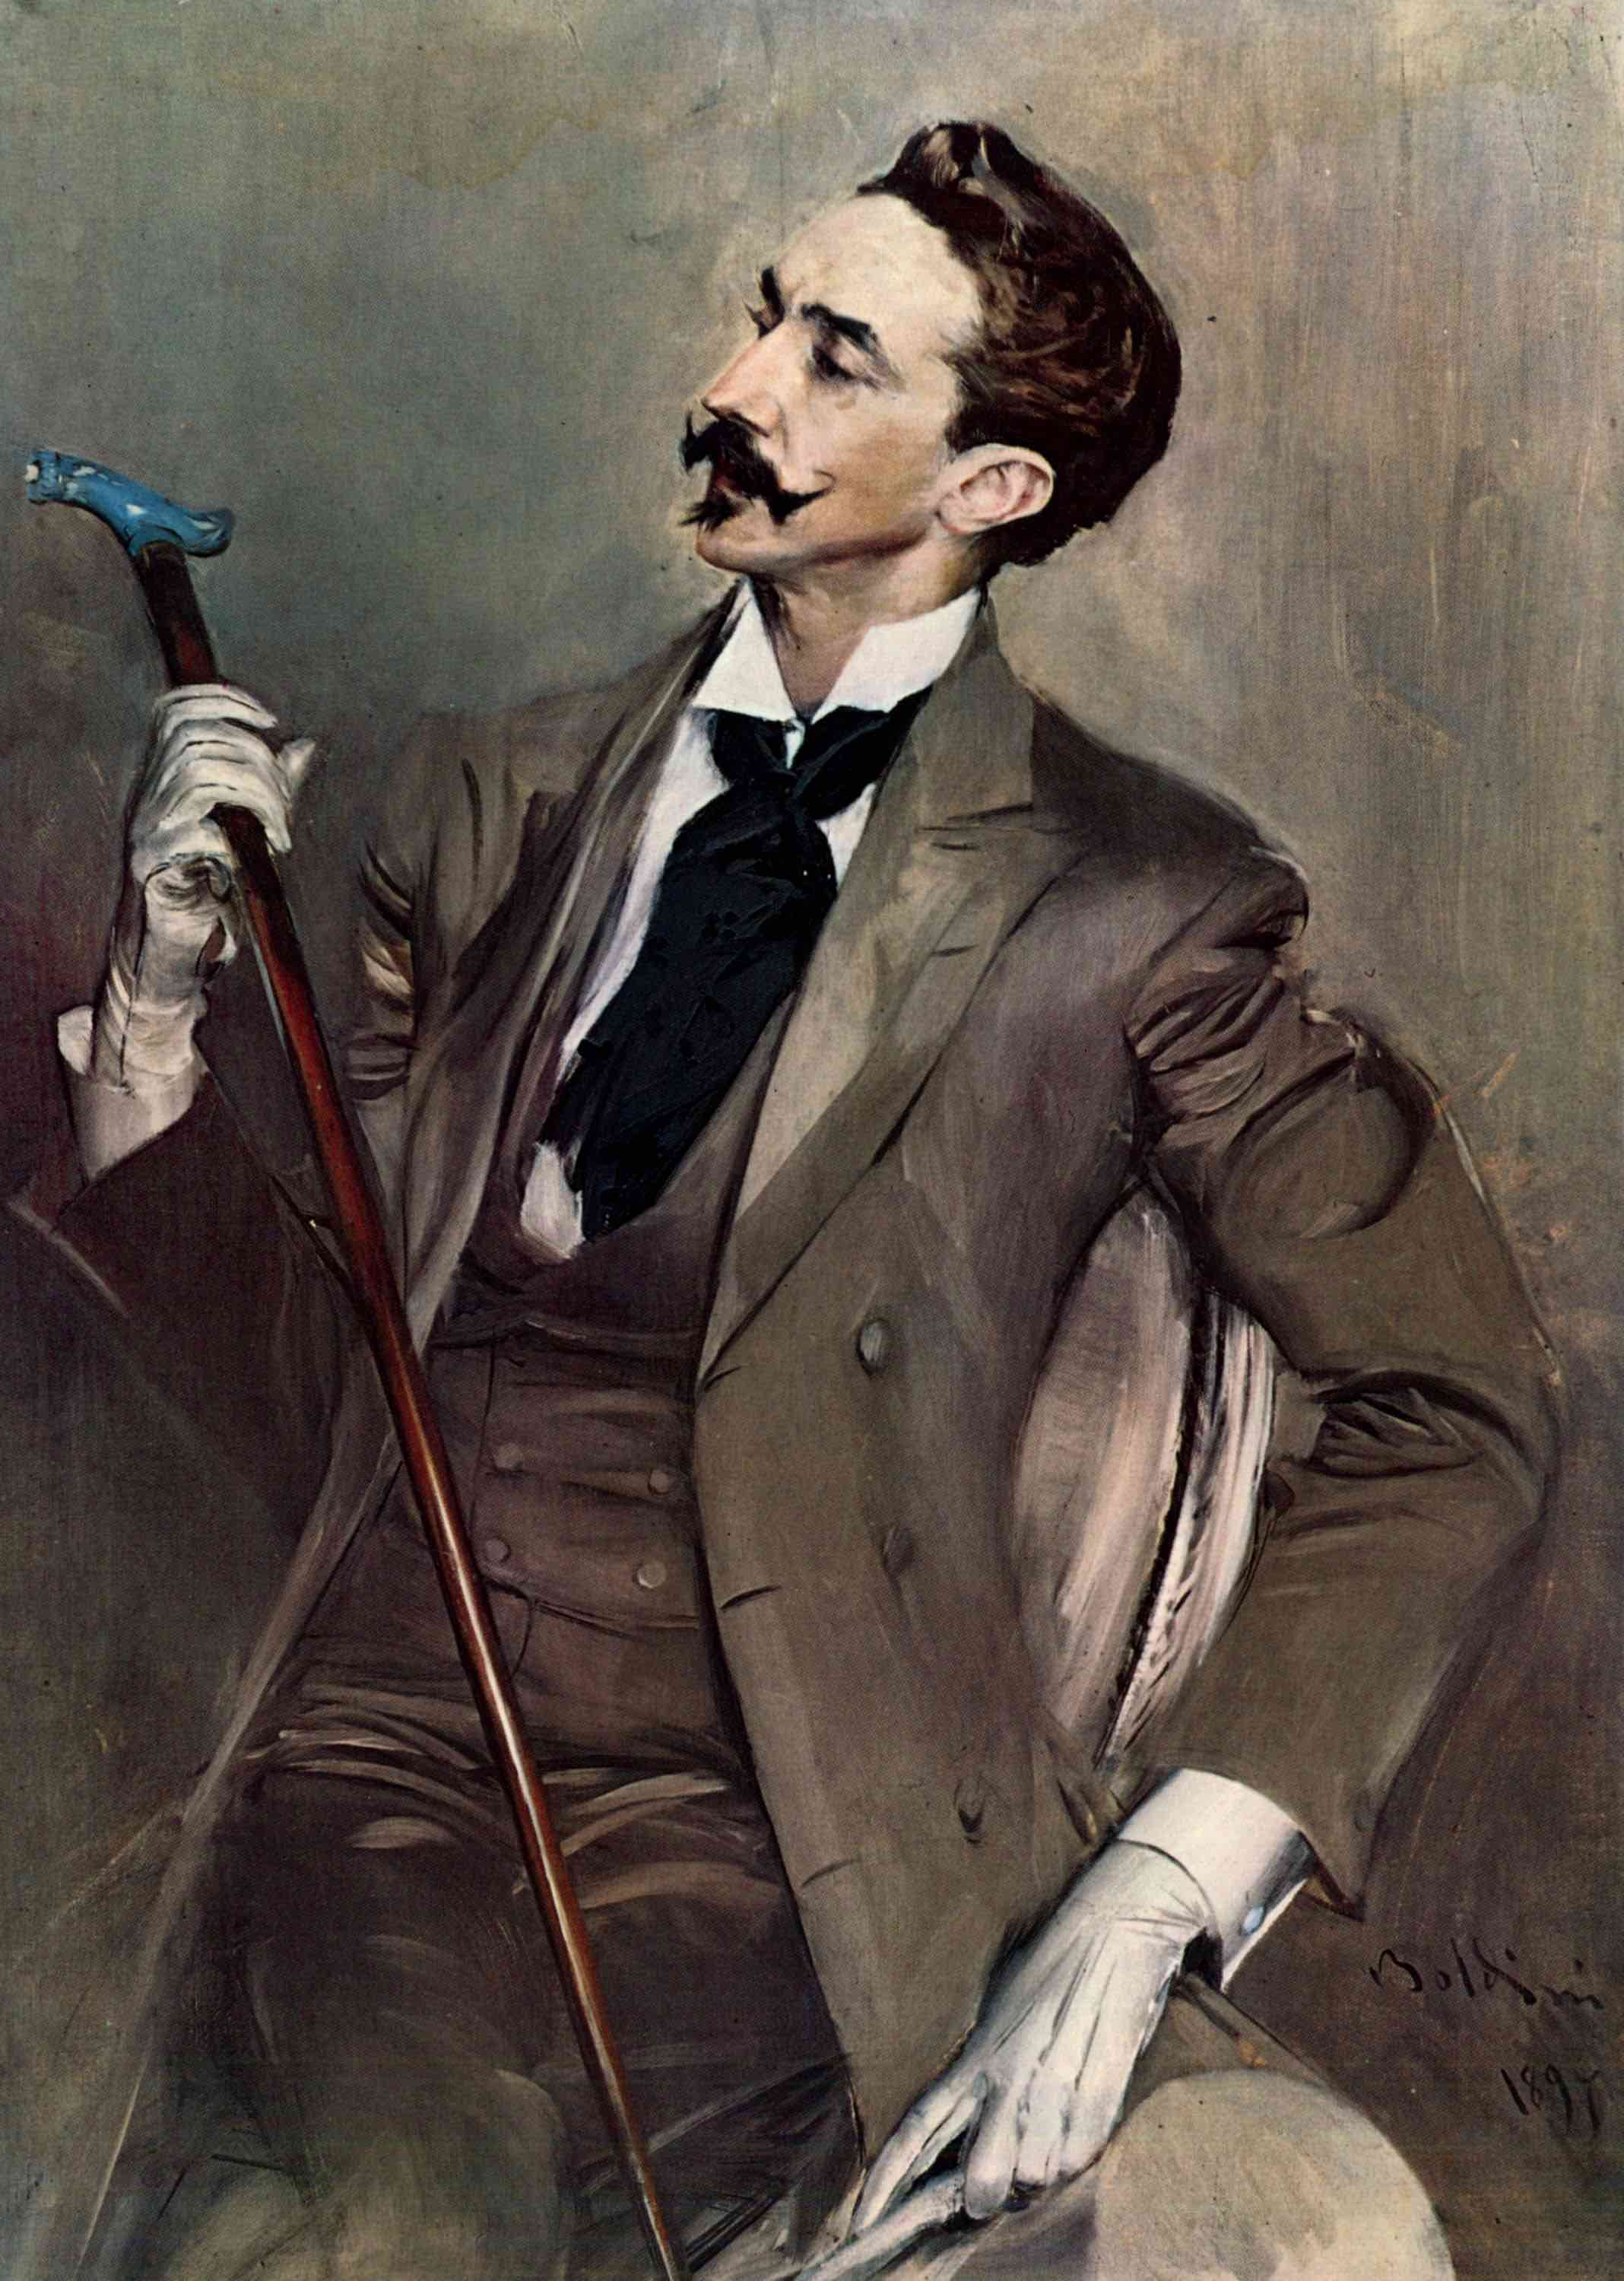 Boldini's 1897 portrait of Baudelarian dandy Count Robert de Montesquiou (sporting suitably sober neckwear).